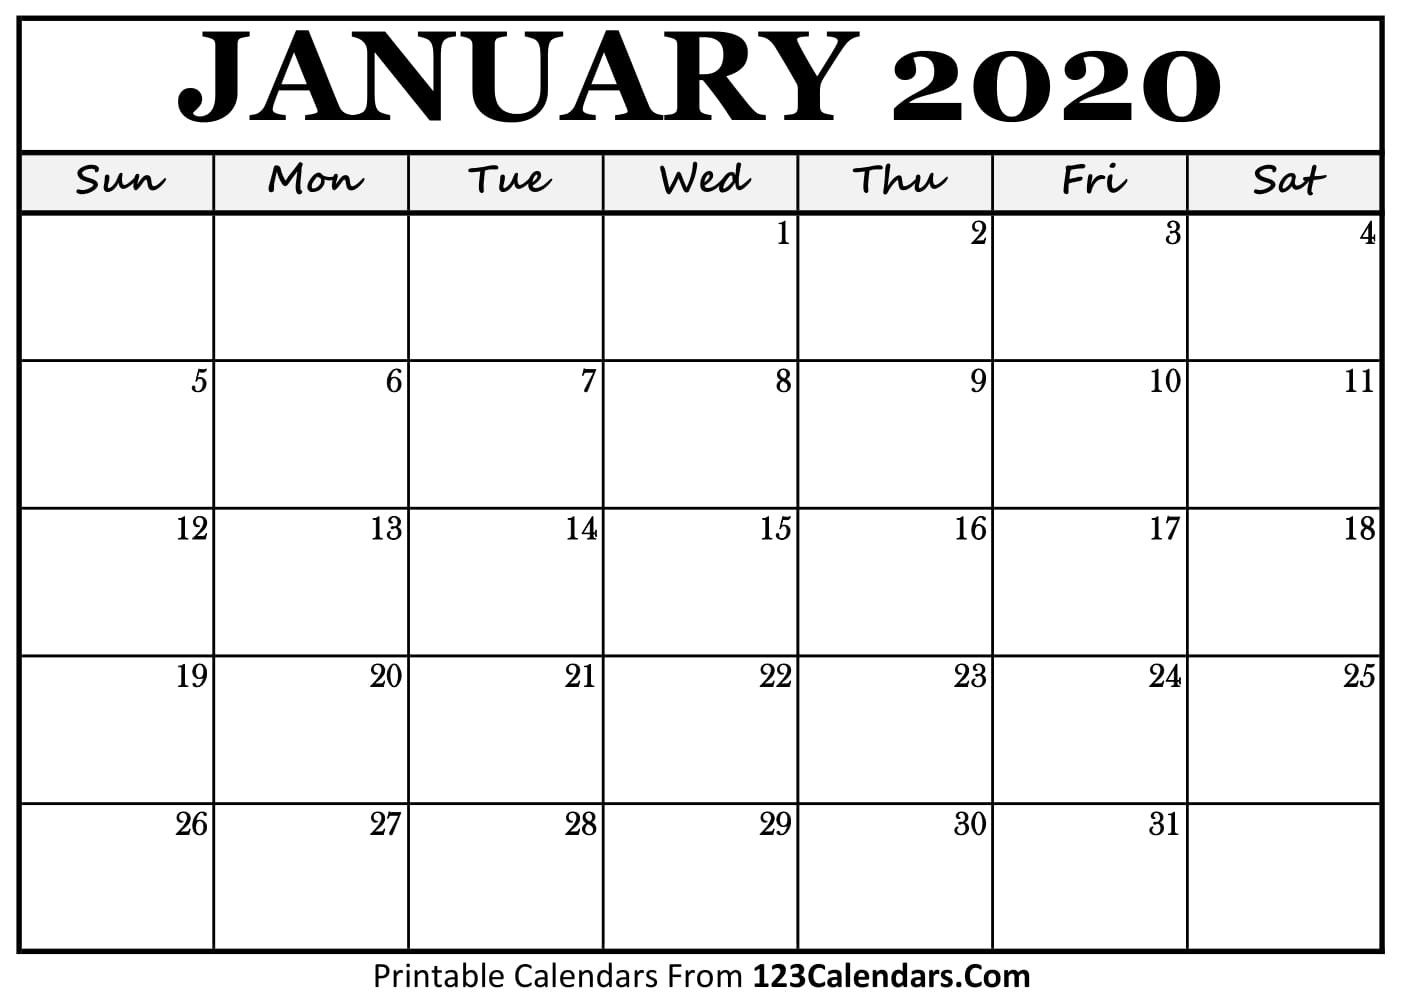 Free Printable Calendar | 123Calendars  Free Printable Monthly Calendar That Can Be Edited